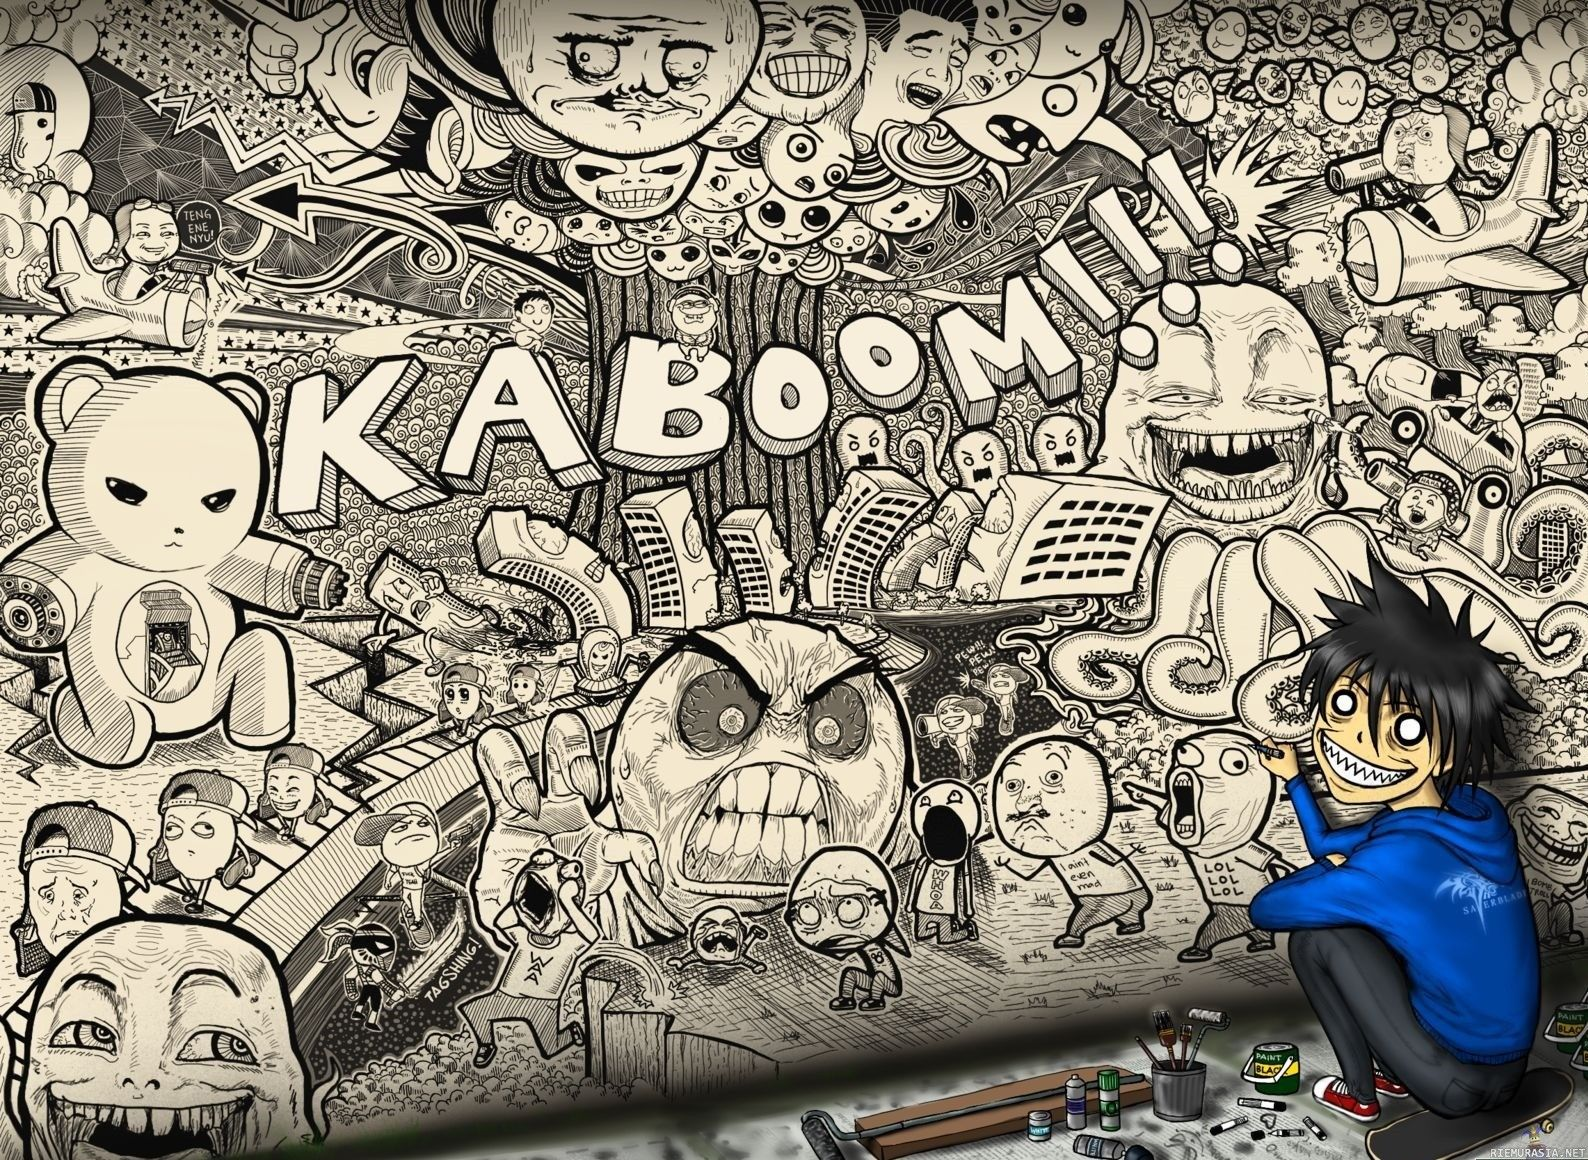 1588x1160 doodle-graffiti-wallpaper-in-pictures-just-good-dope-graffiti-street ...